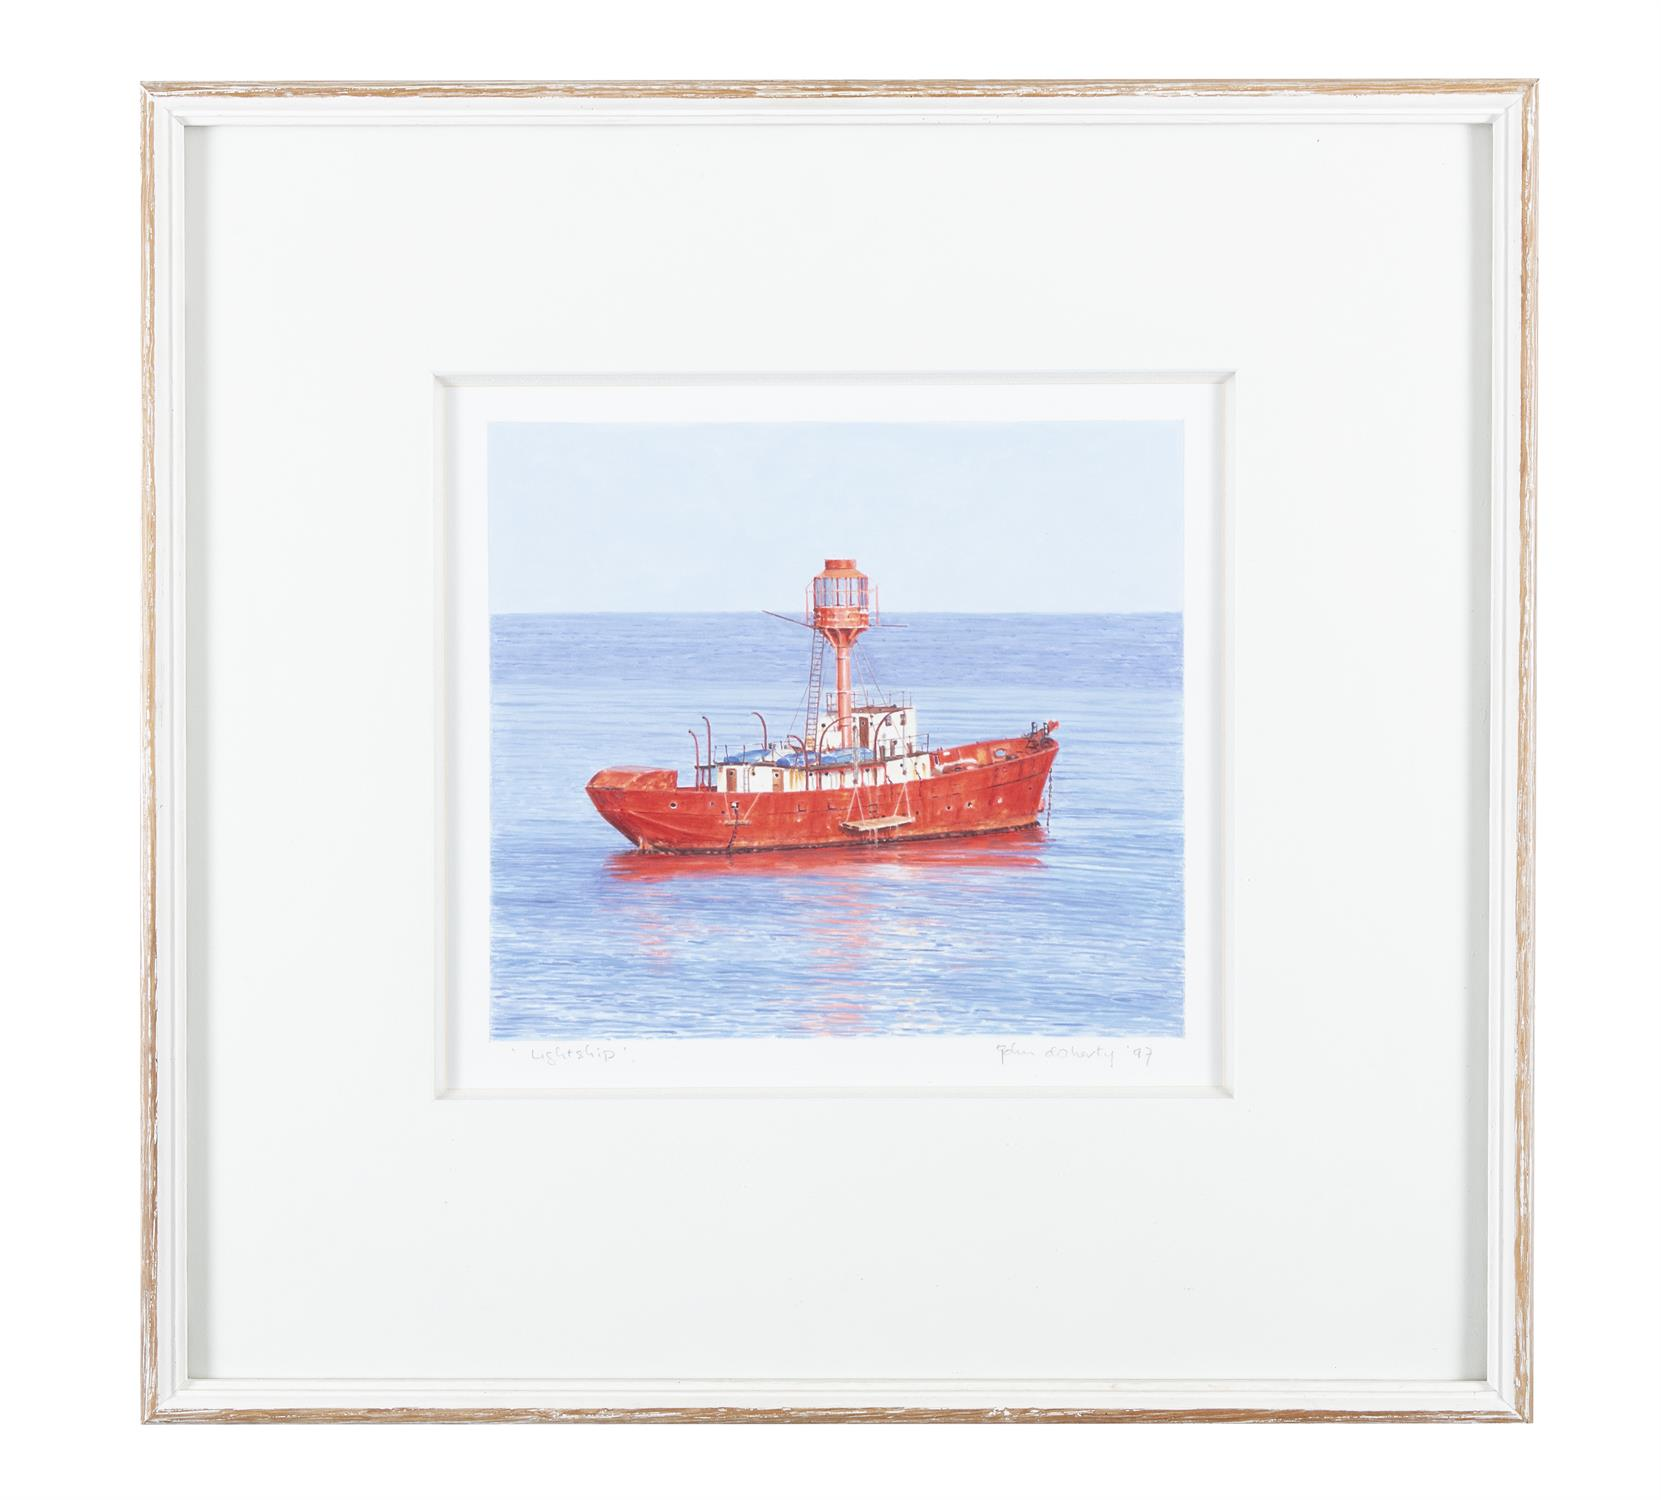 John Doherty (b.1949) Lightship Watercolour, 22.7 x 25.4cm (9 x 10'') Signed, inscribed and - Image 2 of 5